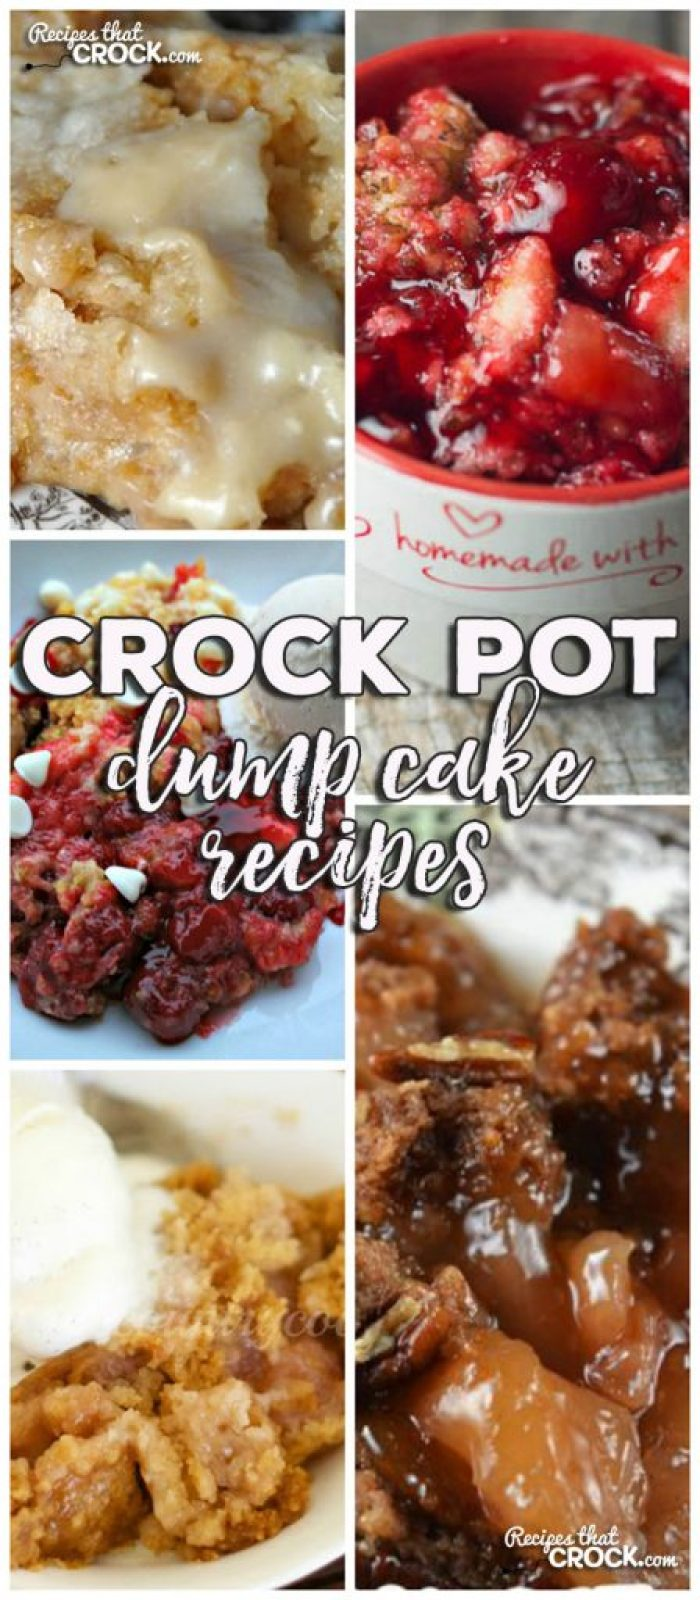 Pineapple Spice Dump Cake Recipes